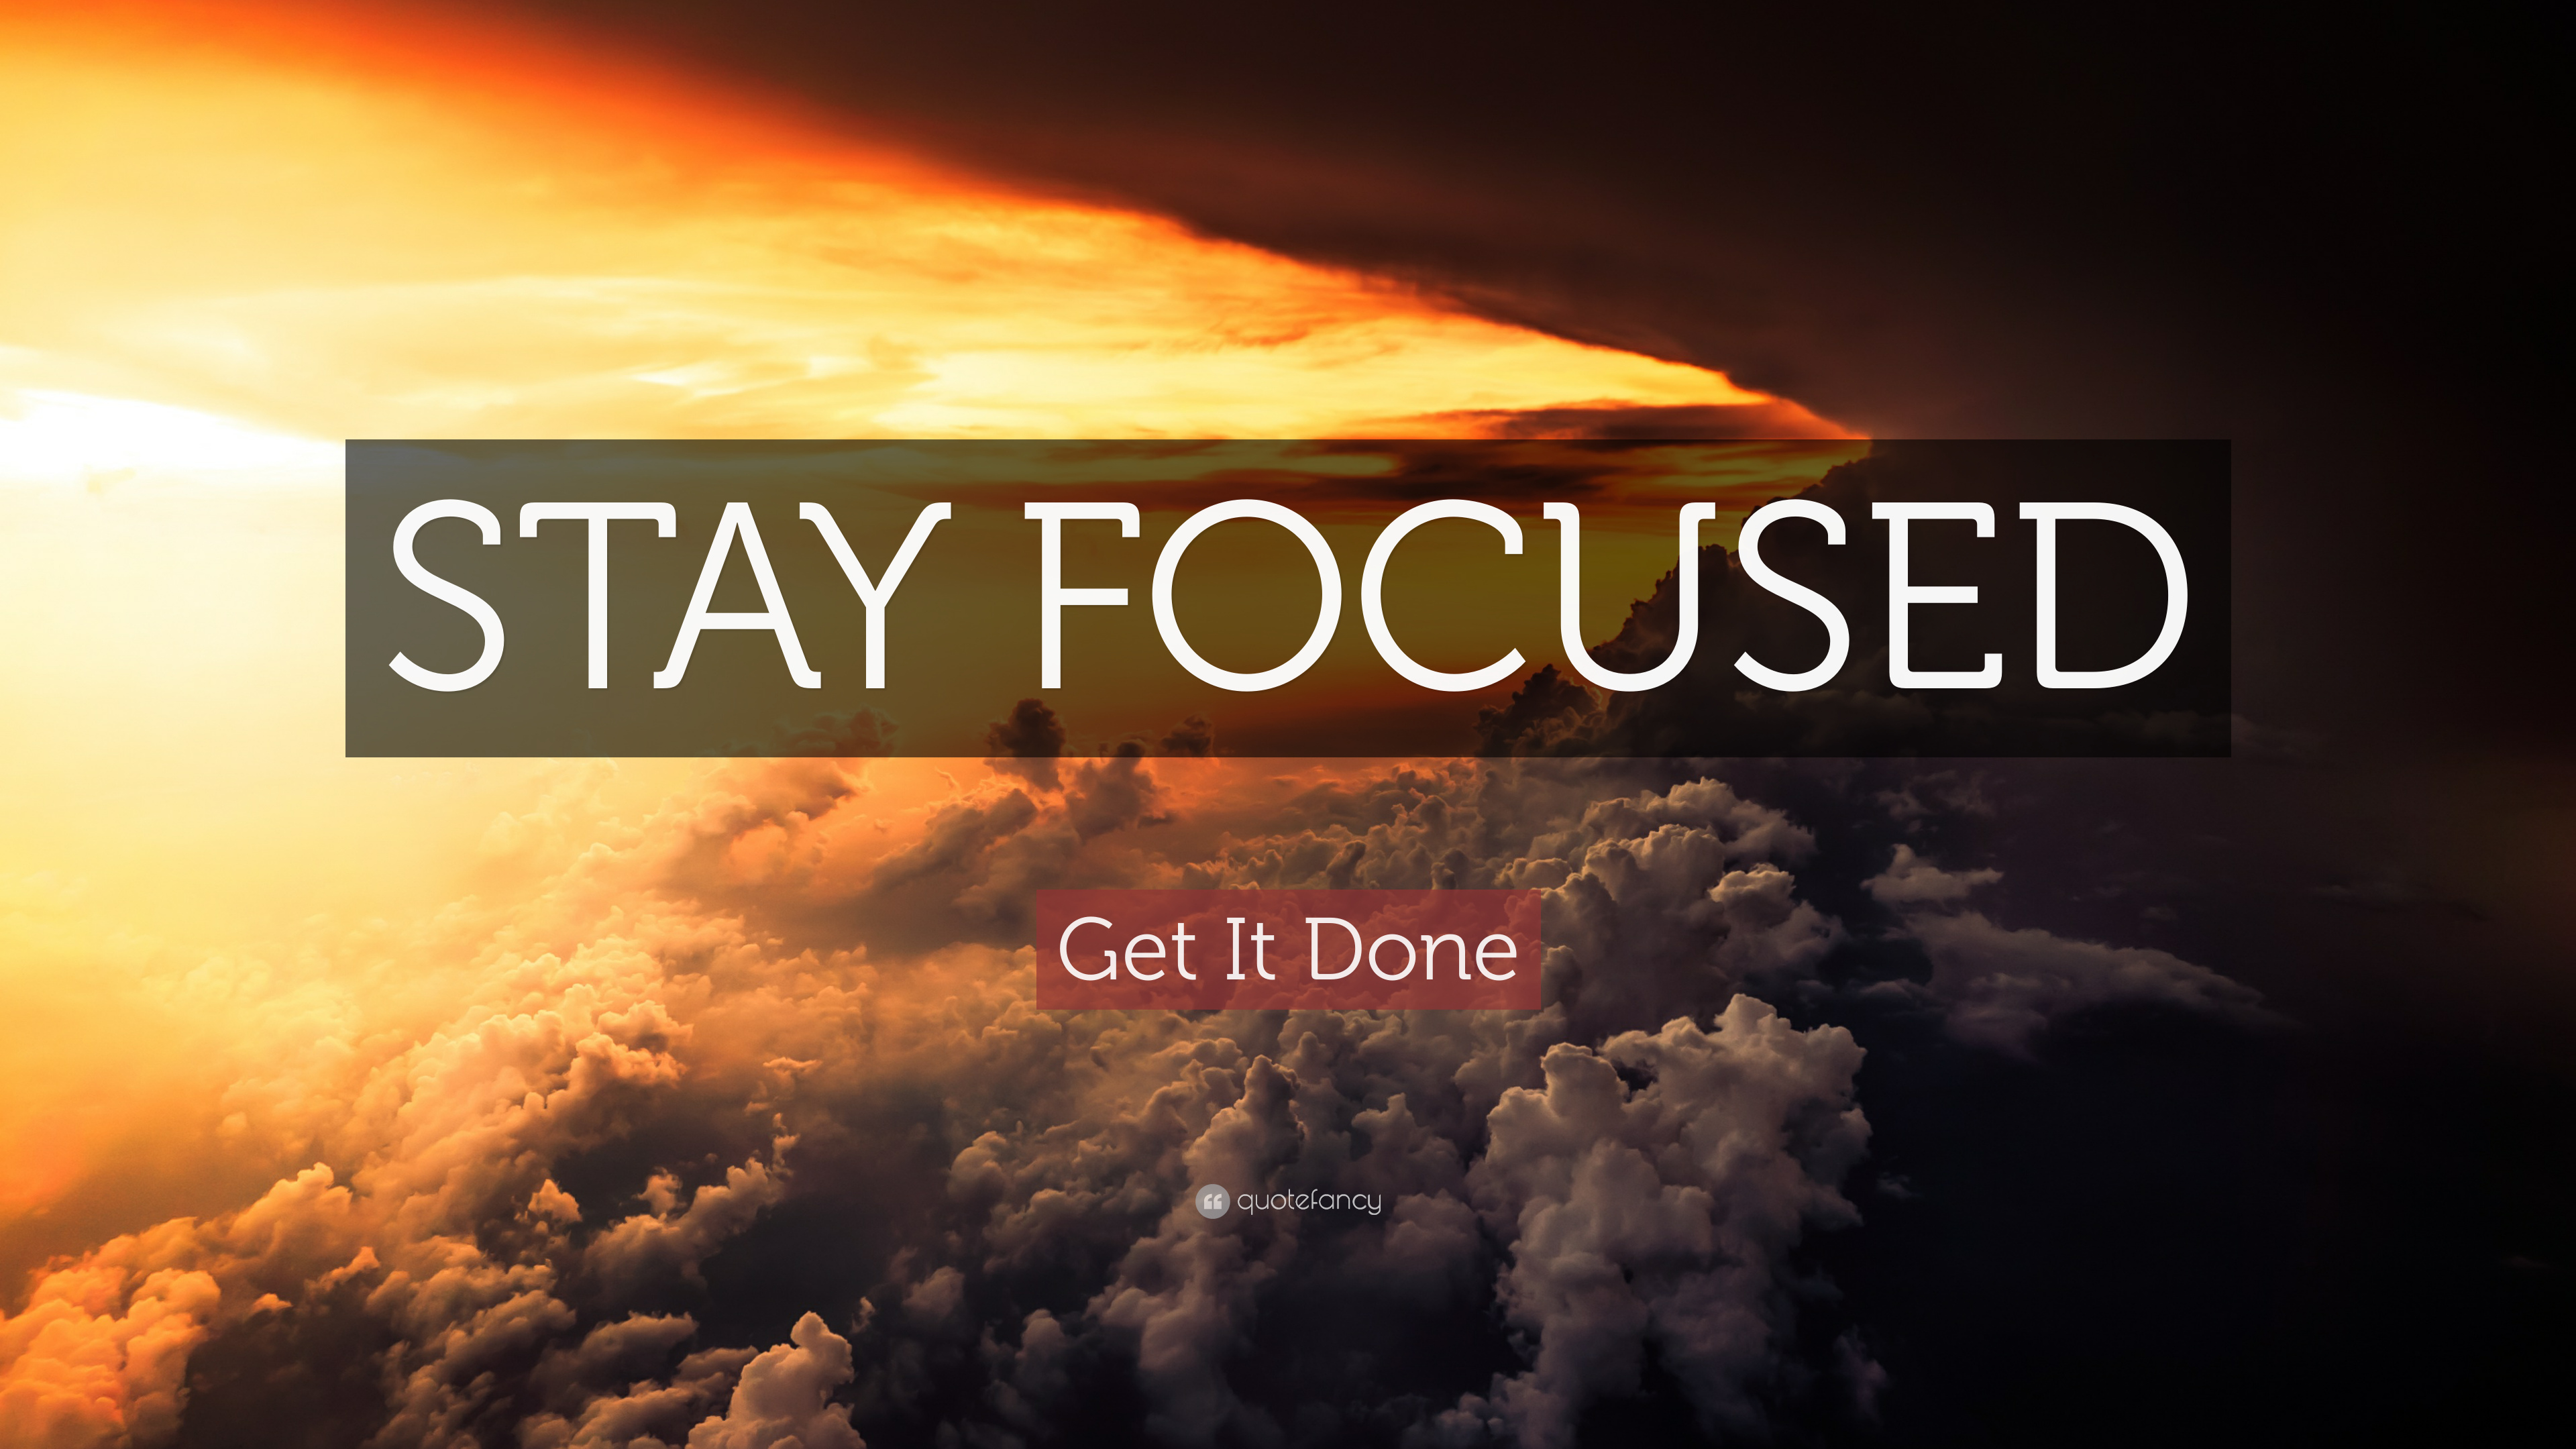 Motivational Wallpapers Hd Get It Done Quote Stay Focused 20 Wallpapers Quotefancy